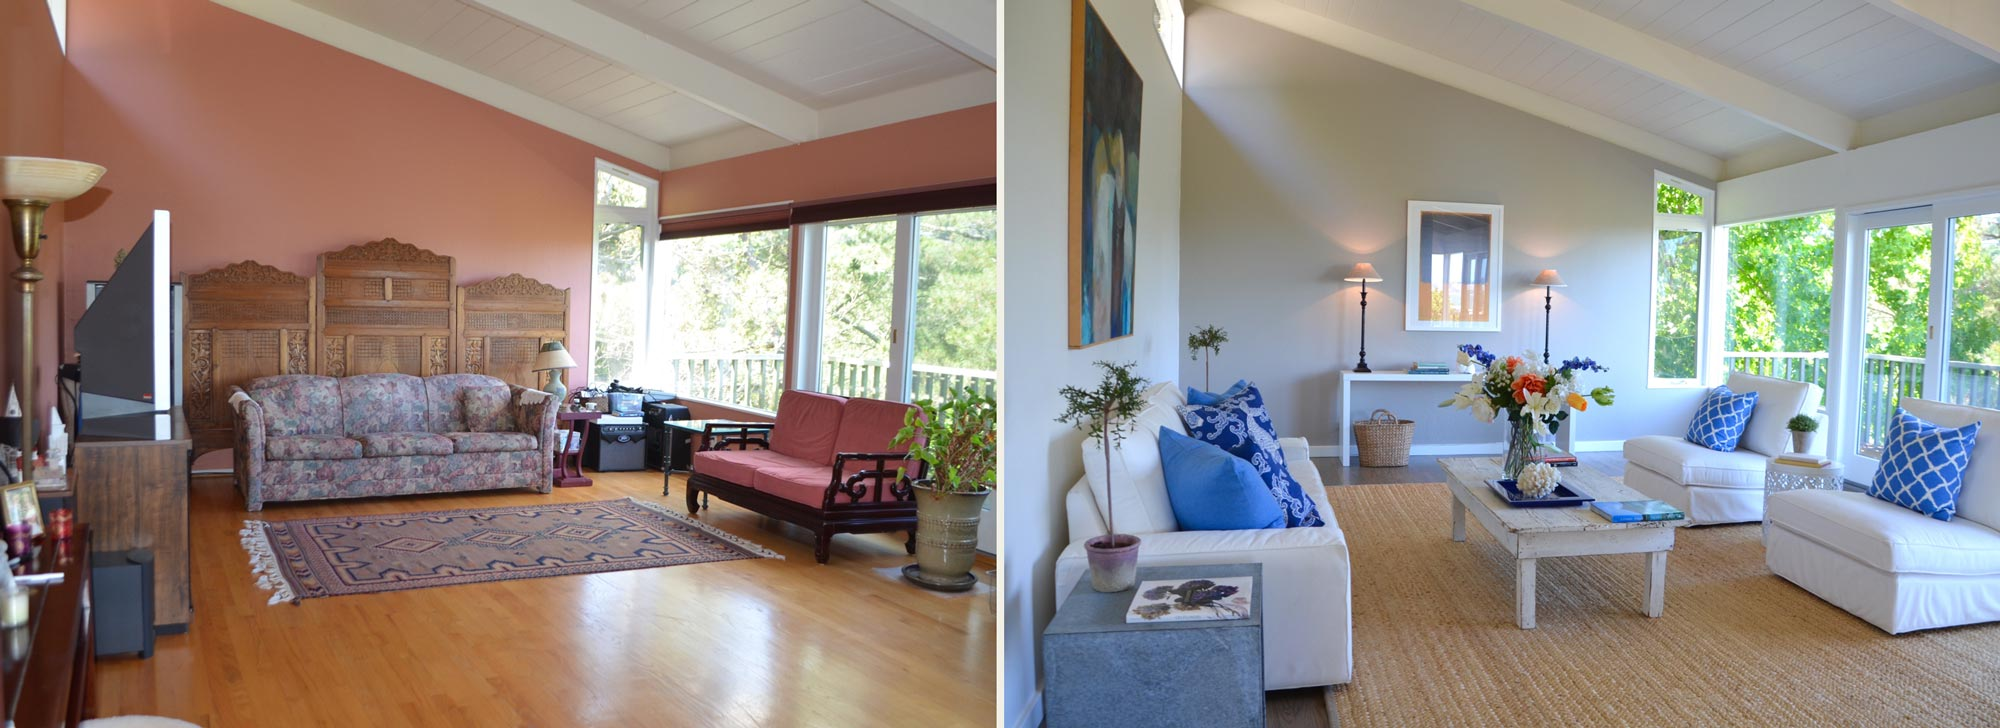 cary-nowell-staging-before-after-1.jpg